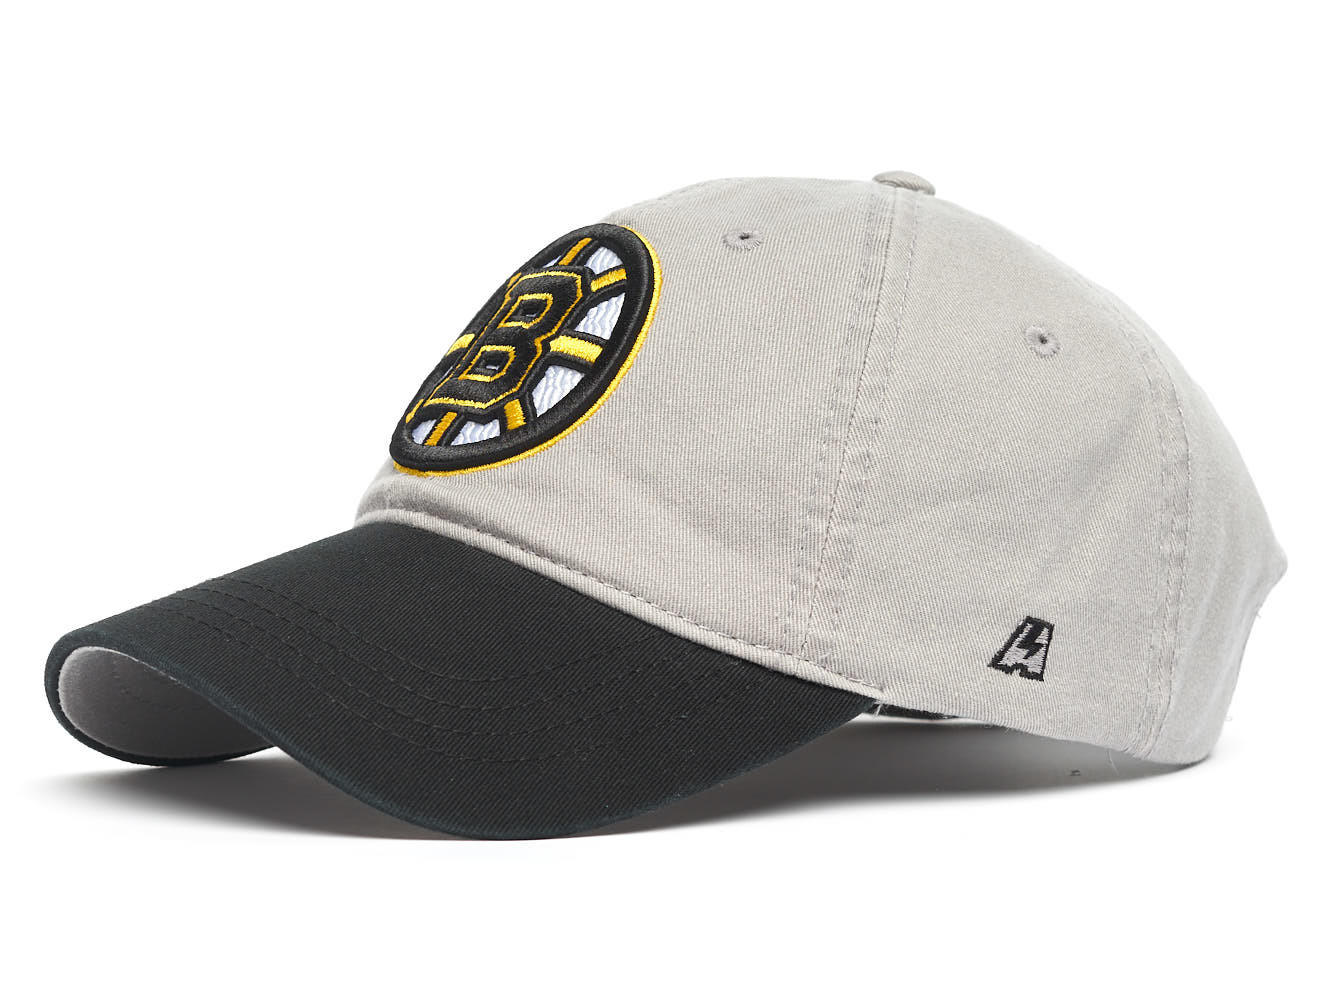 Бейсболка NHL Boston Bruins серая